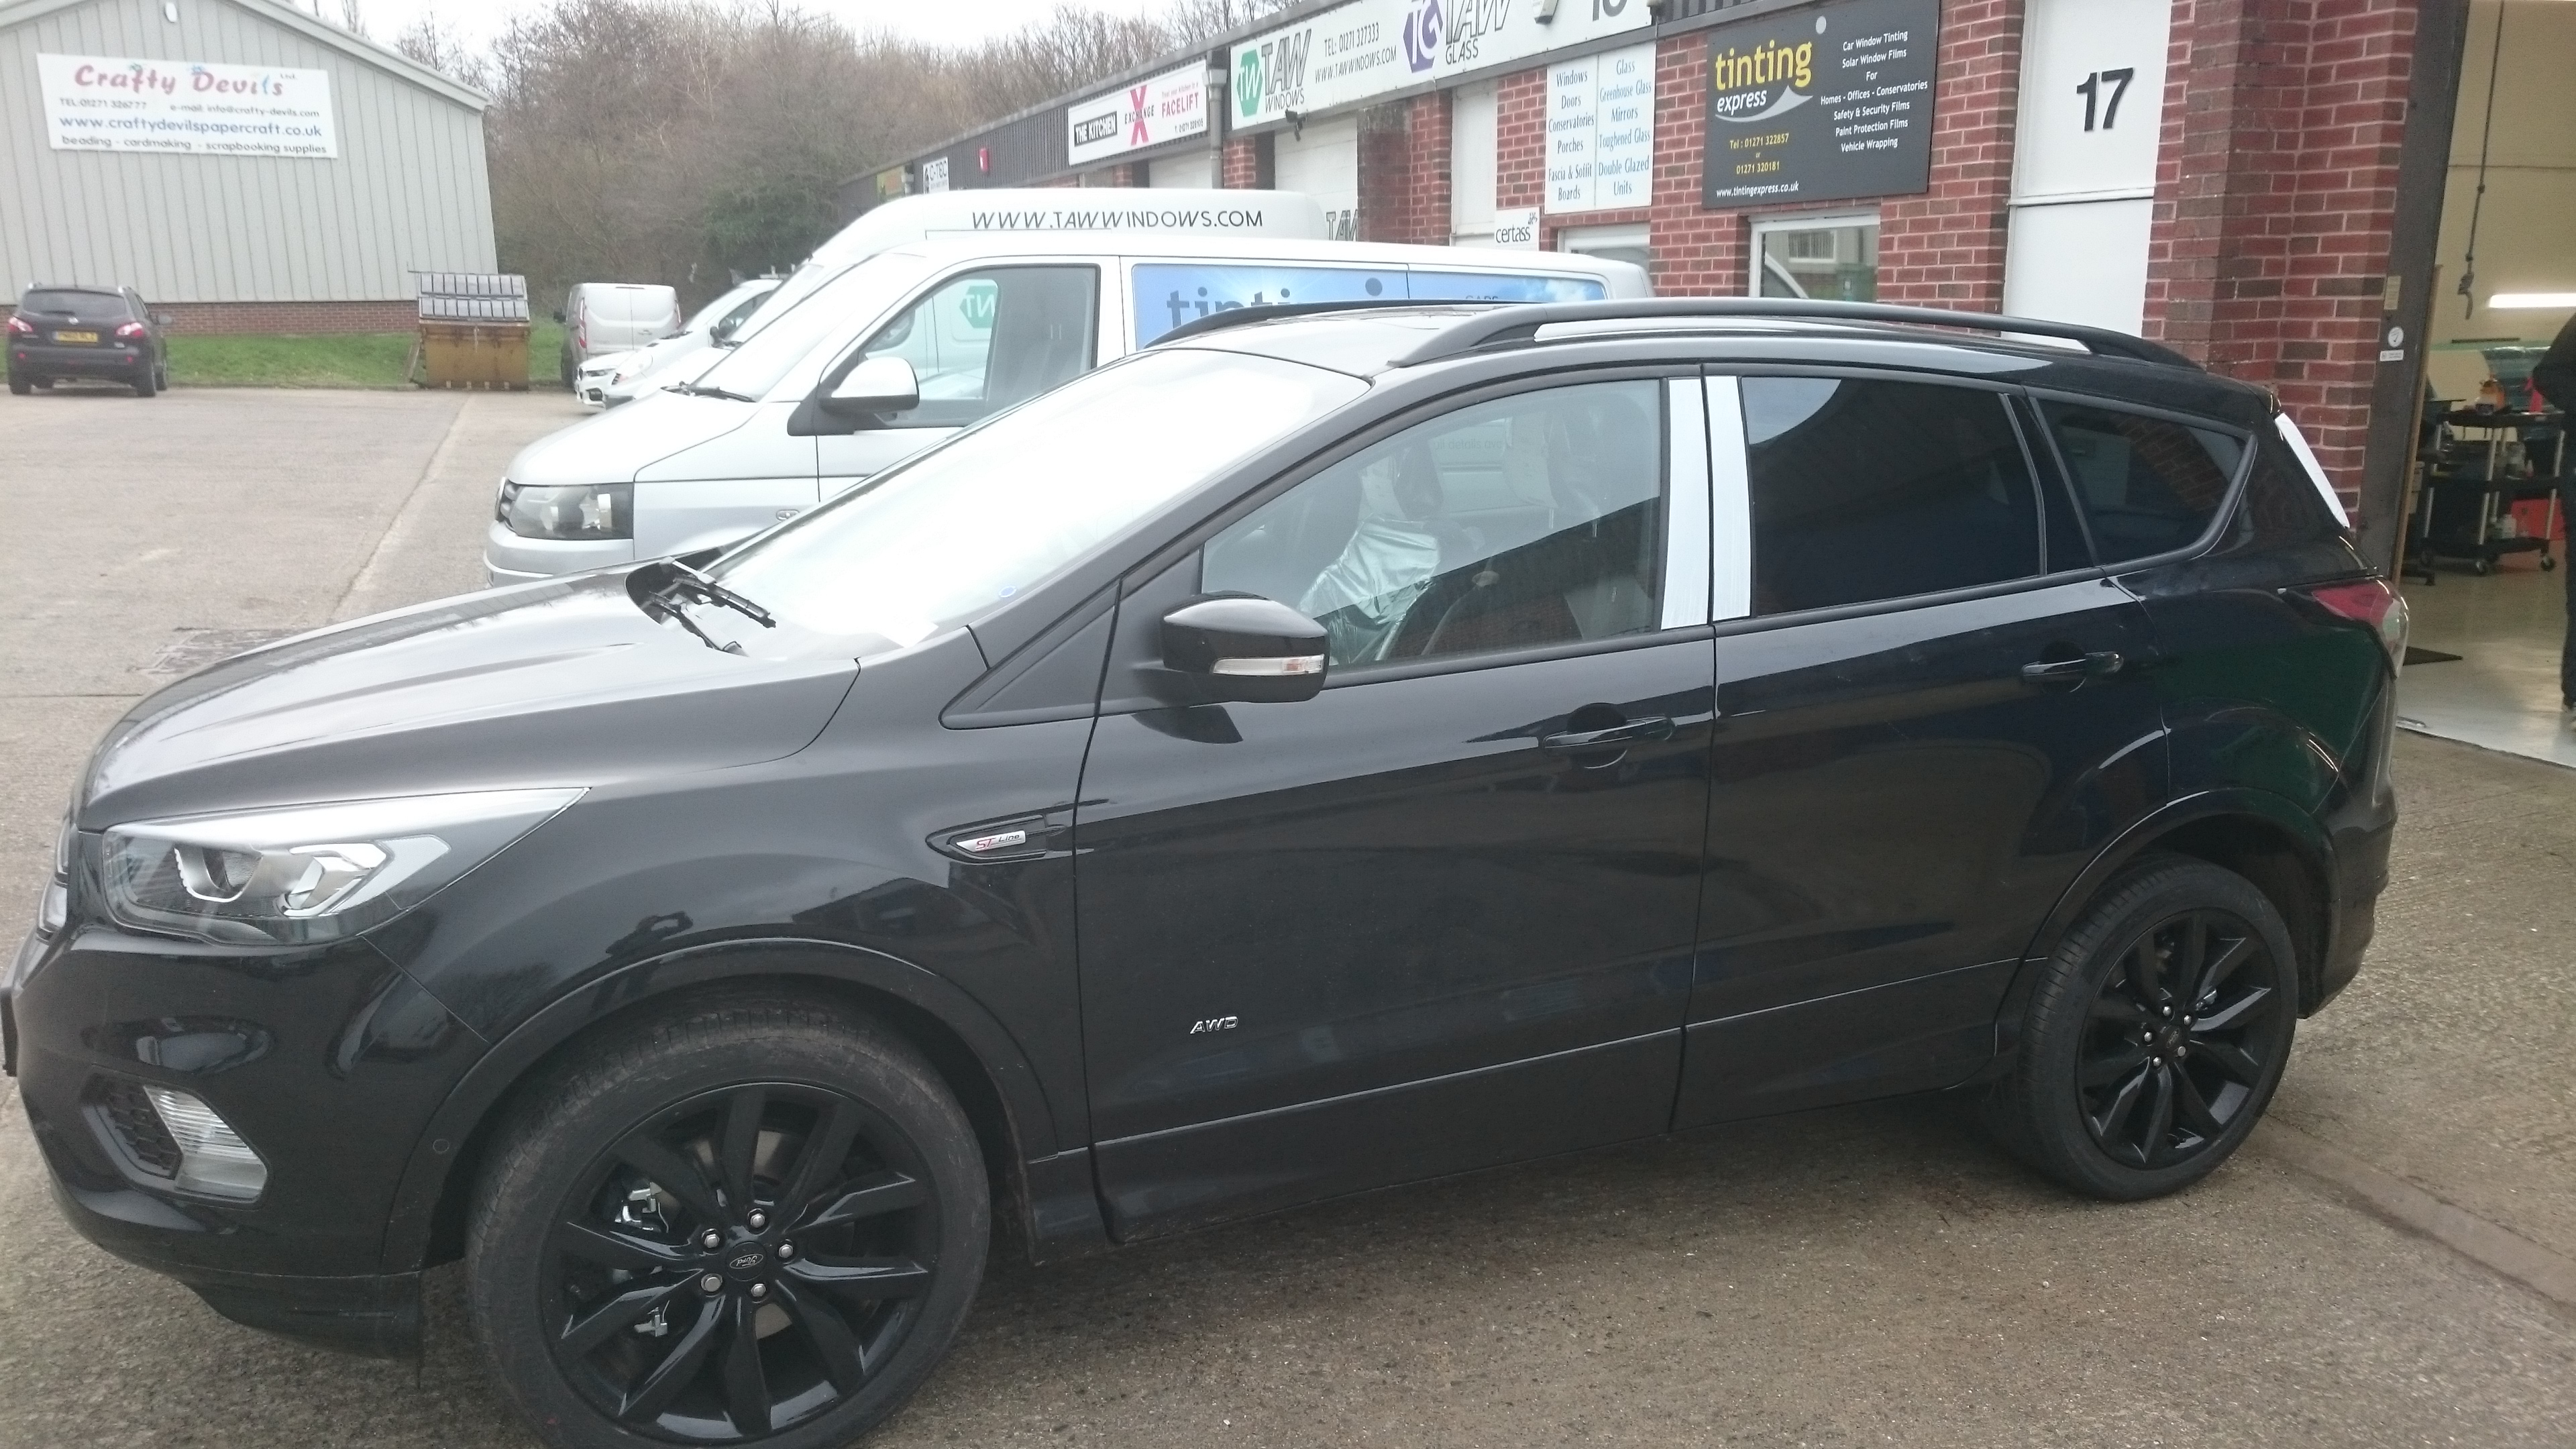 Ford Kuga fitted with Llumar ATC 20 window tints in Barnstaple by Tinting Express.